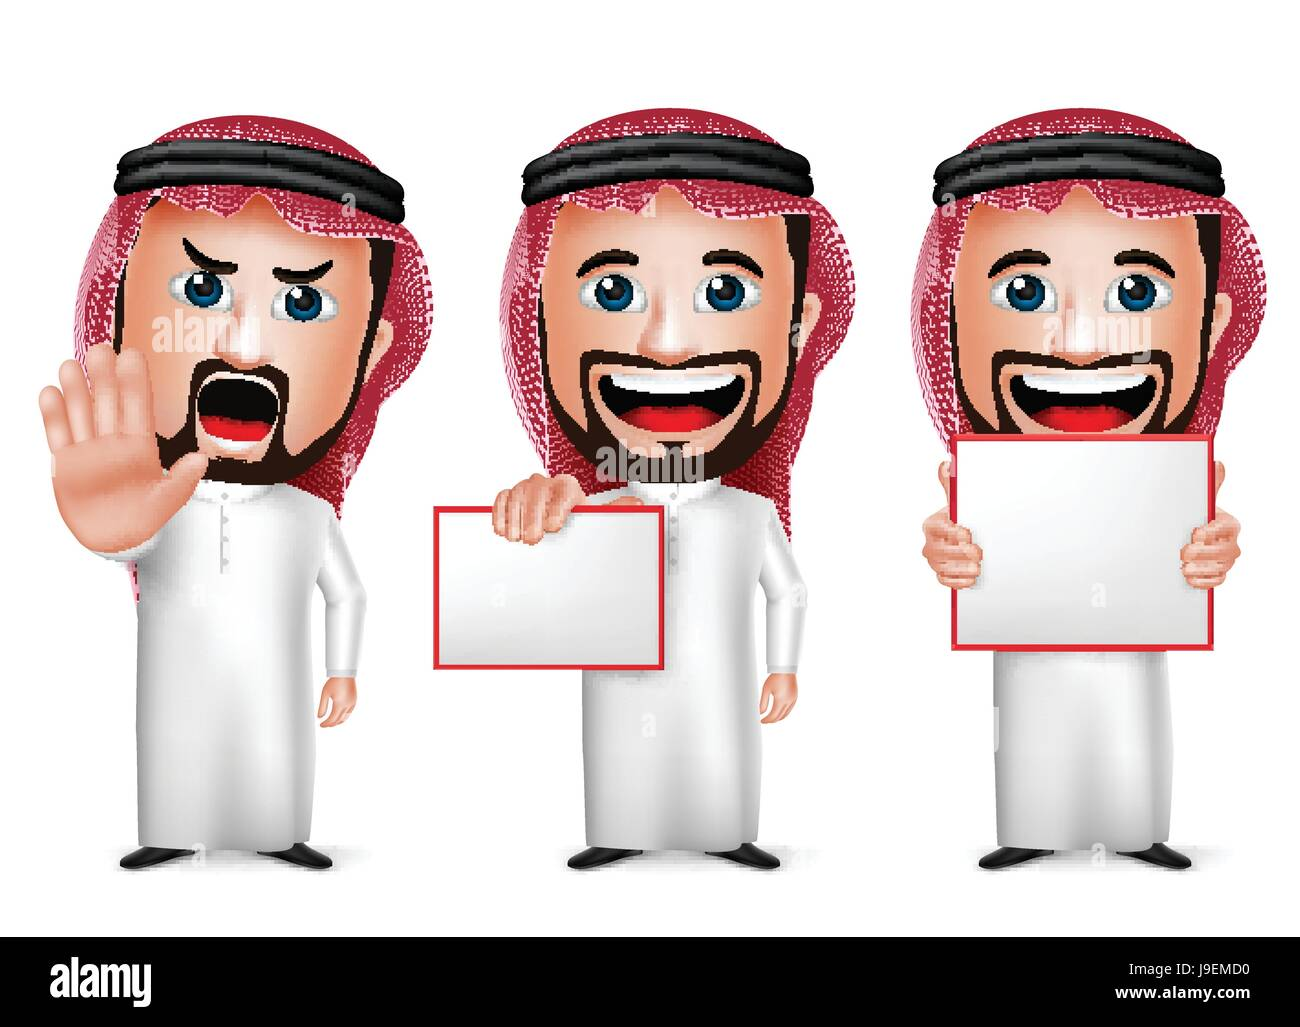 Vector Saudi Arab Man Cartoon Character Holding Blank White Board Wearing Thobe Isolated in White Background. Set - Stock Image